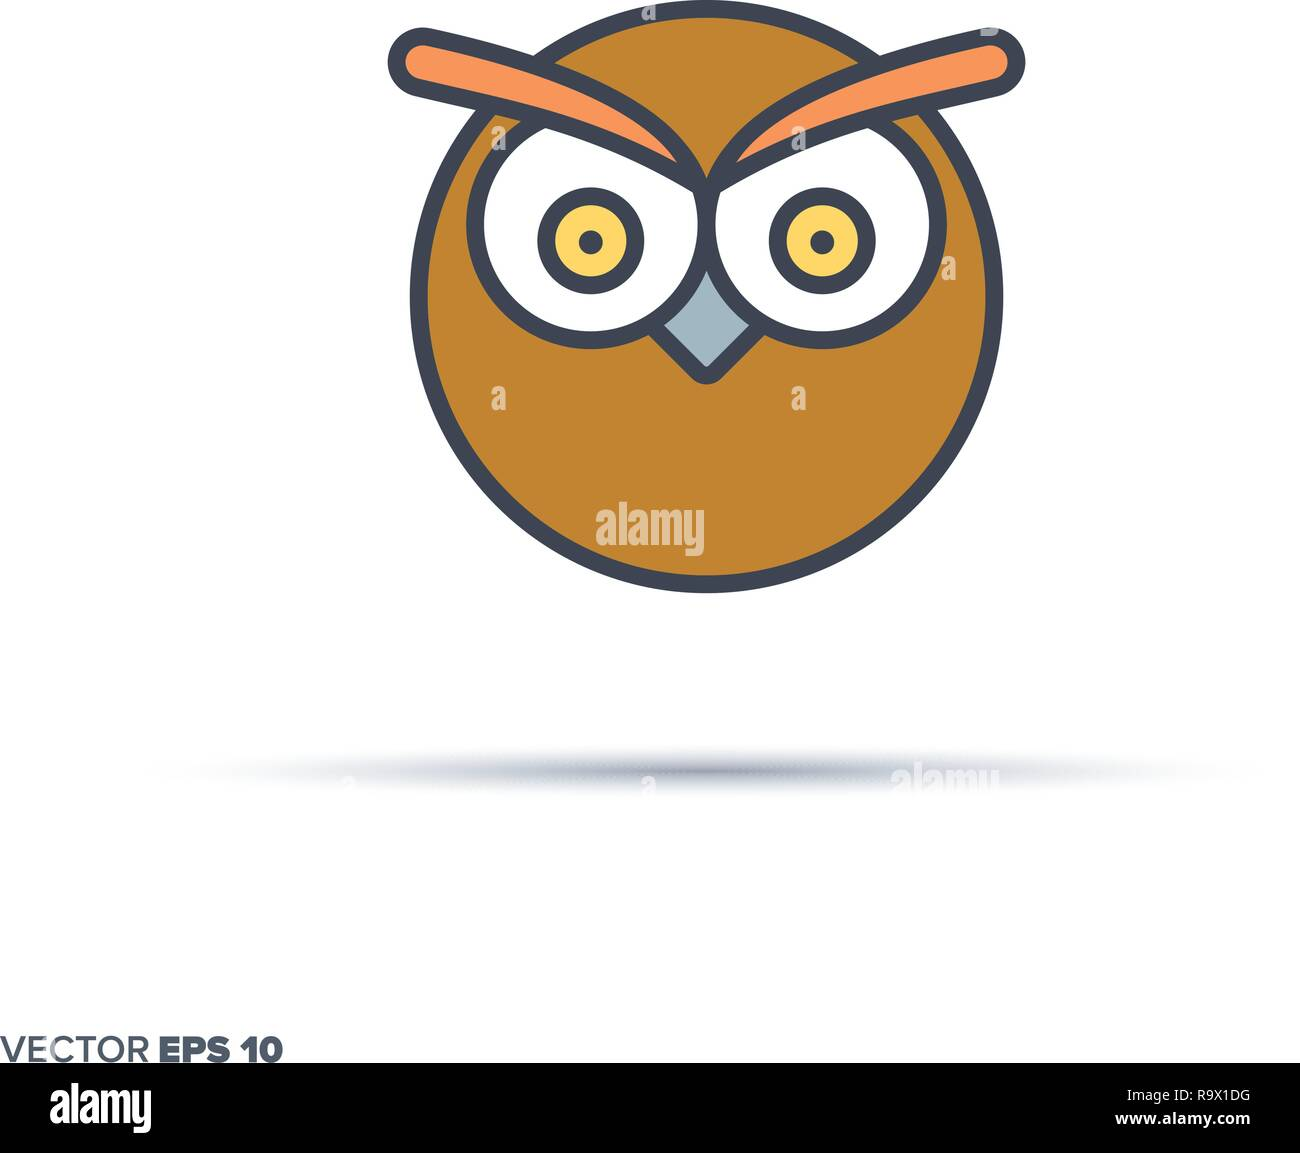 Cute owl face outline vector icon with color fill. Funny animal illustration. - Stock Vector